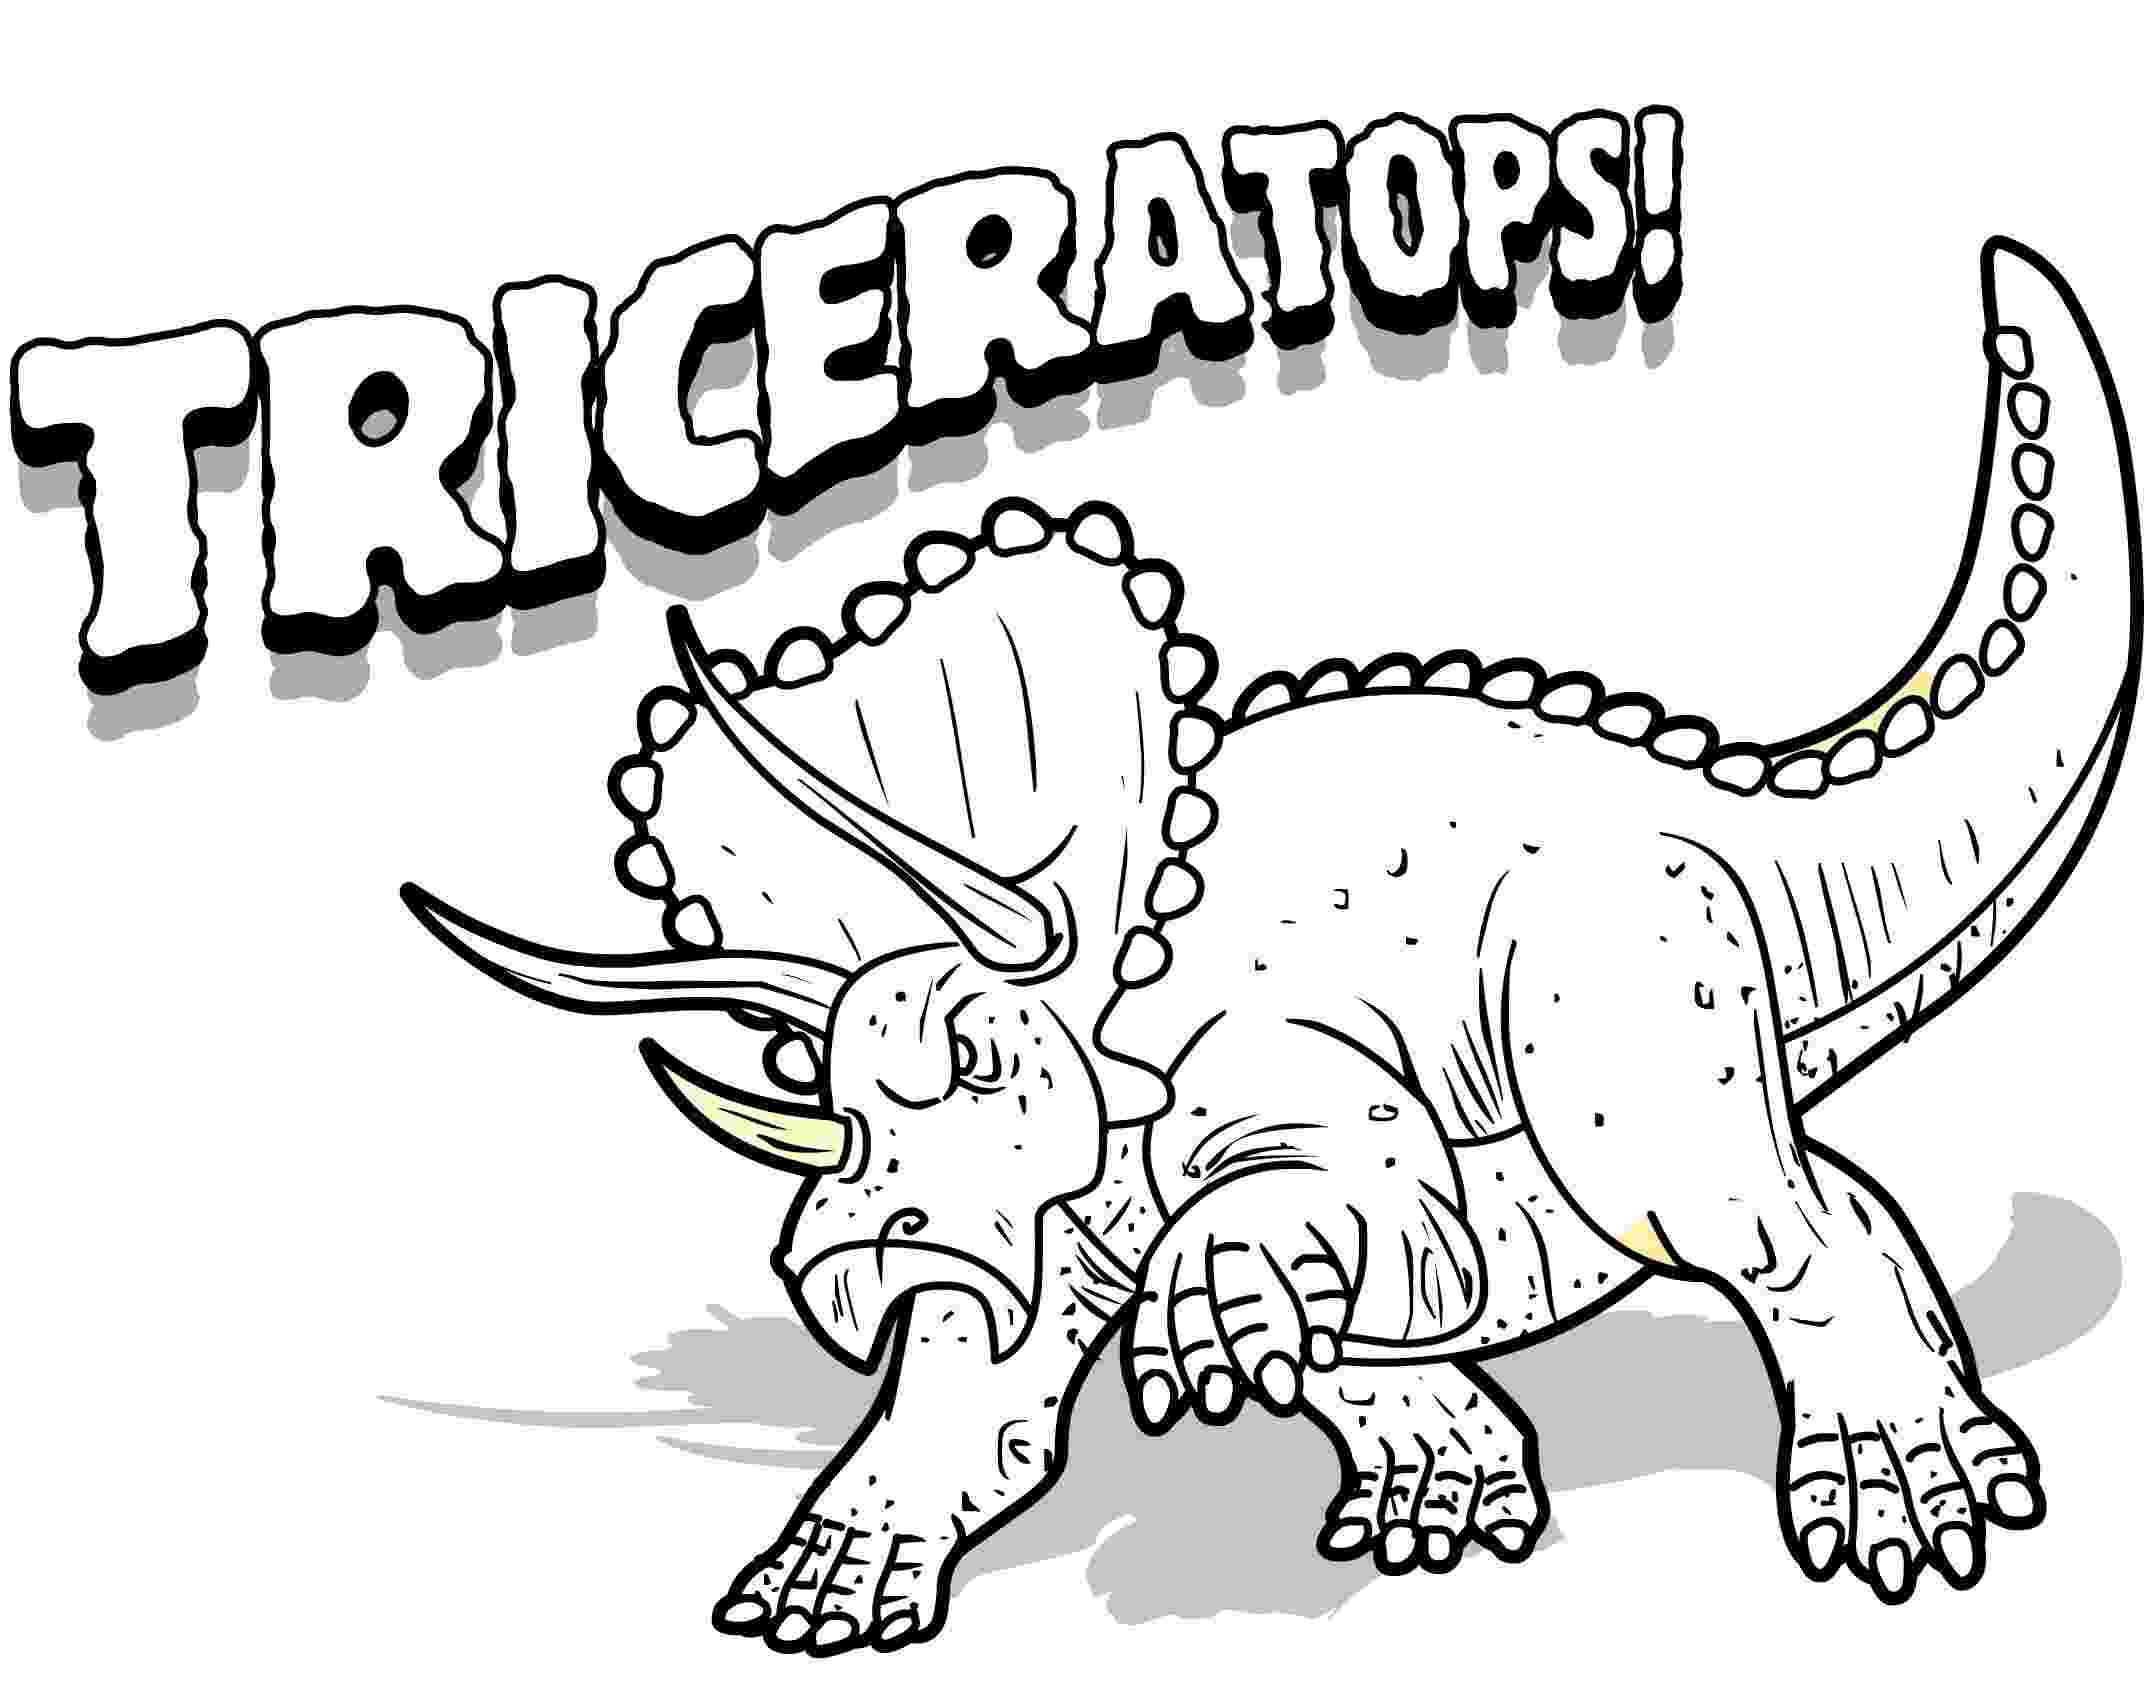 triceratops pictures to color free printable triceratops coloring pages for kids to color triceratops pictures